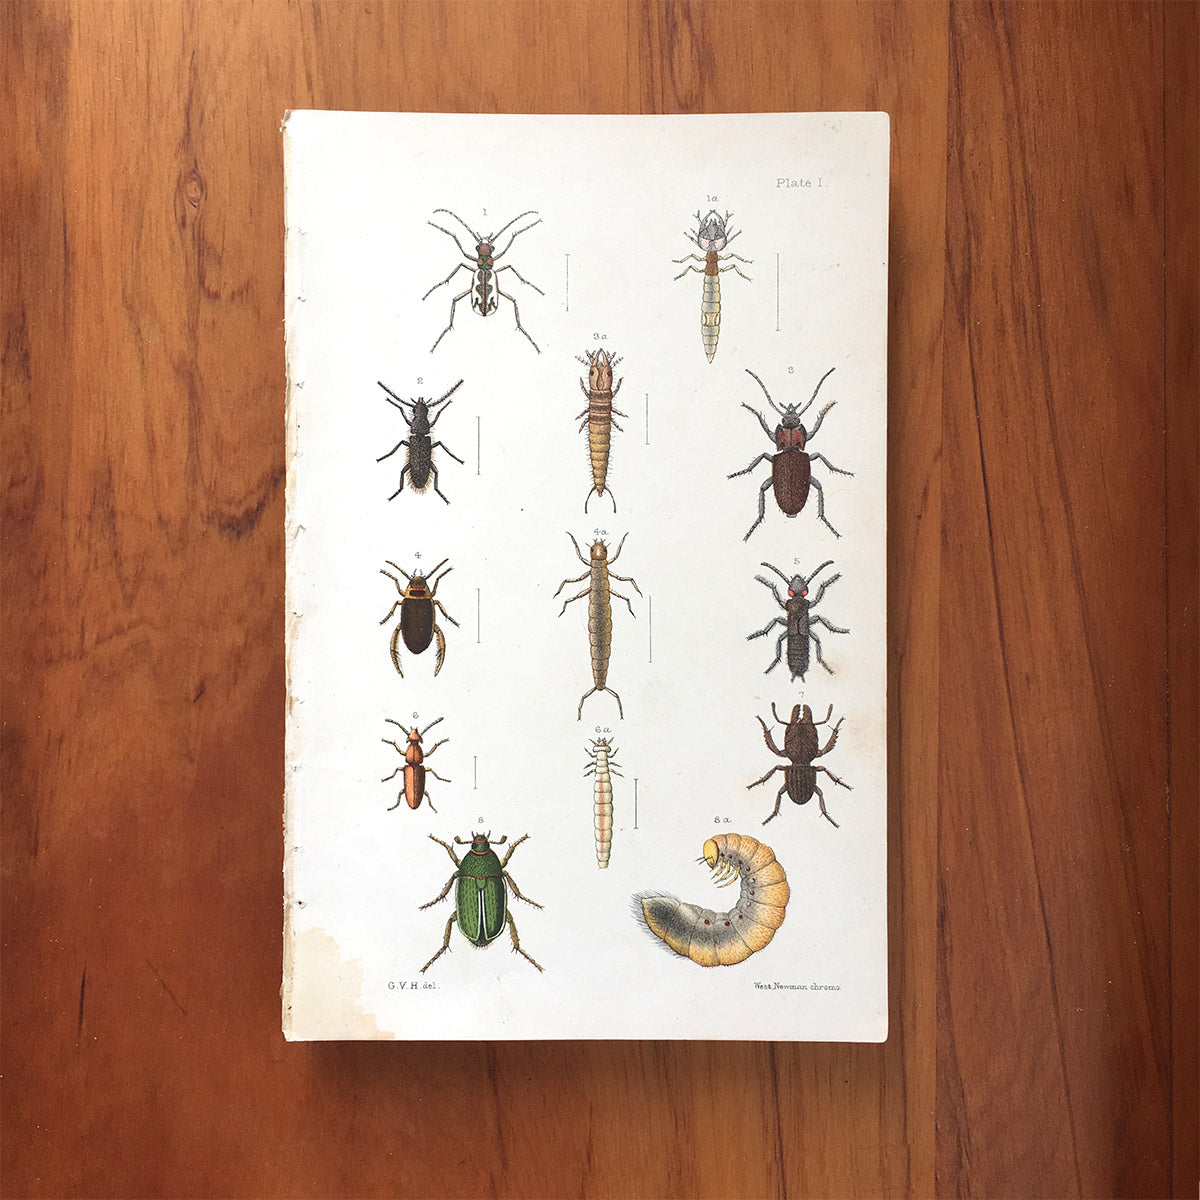 New Zealand insects. Plate I. Coleoptera